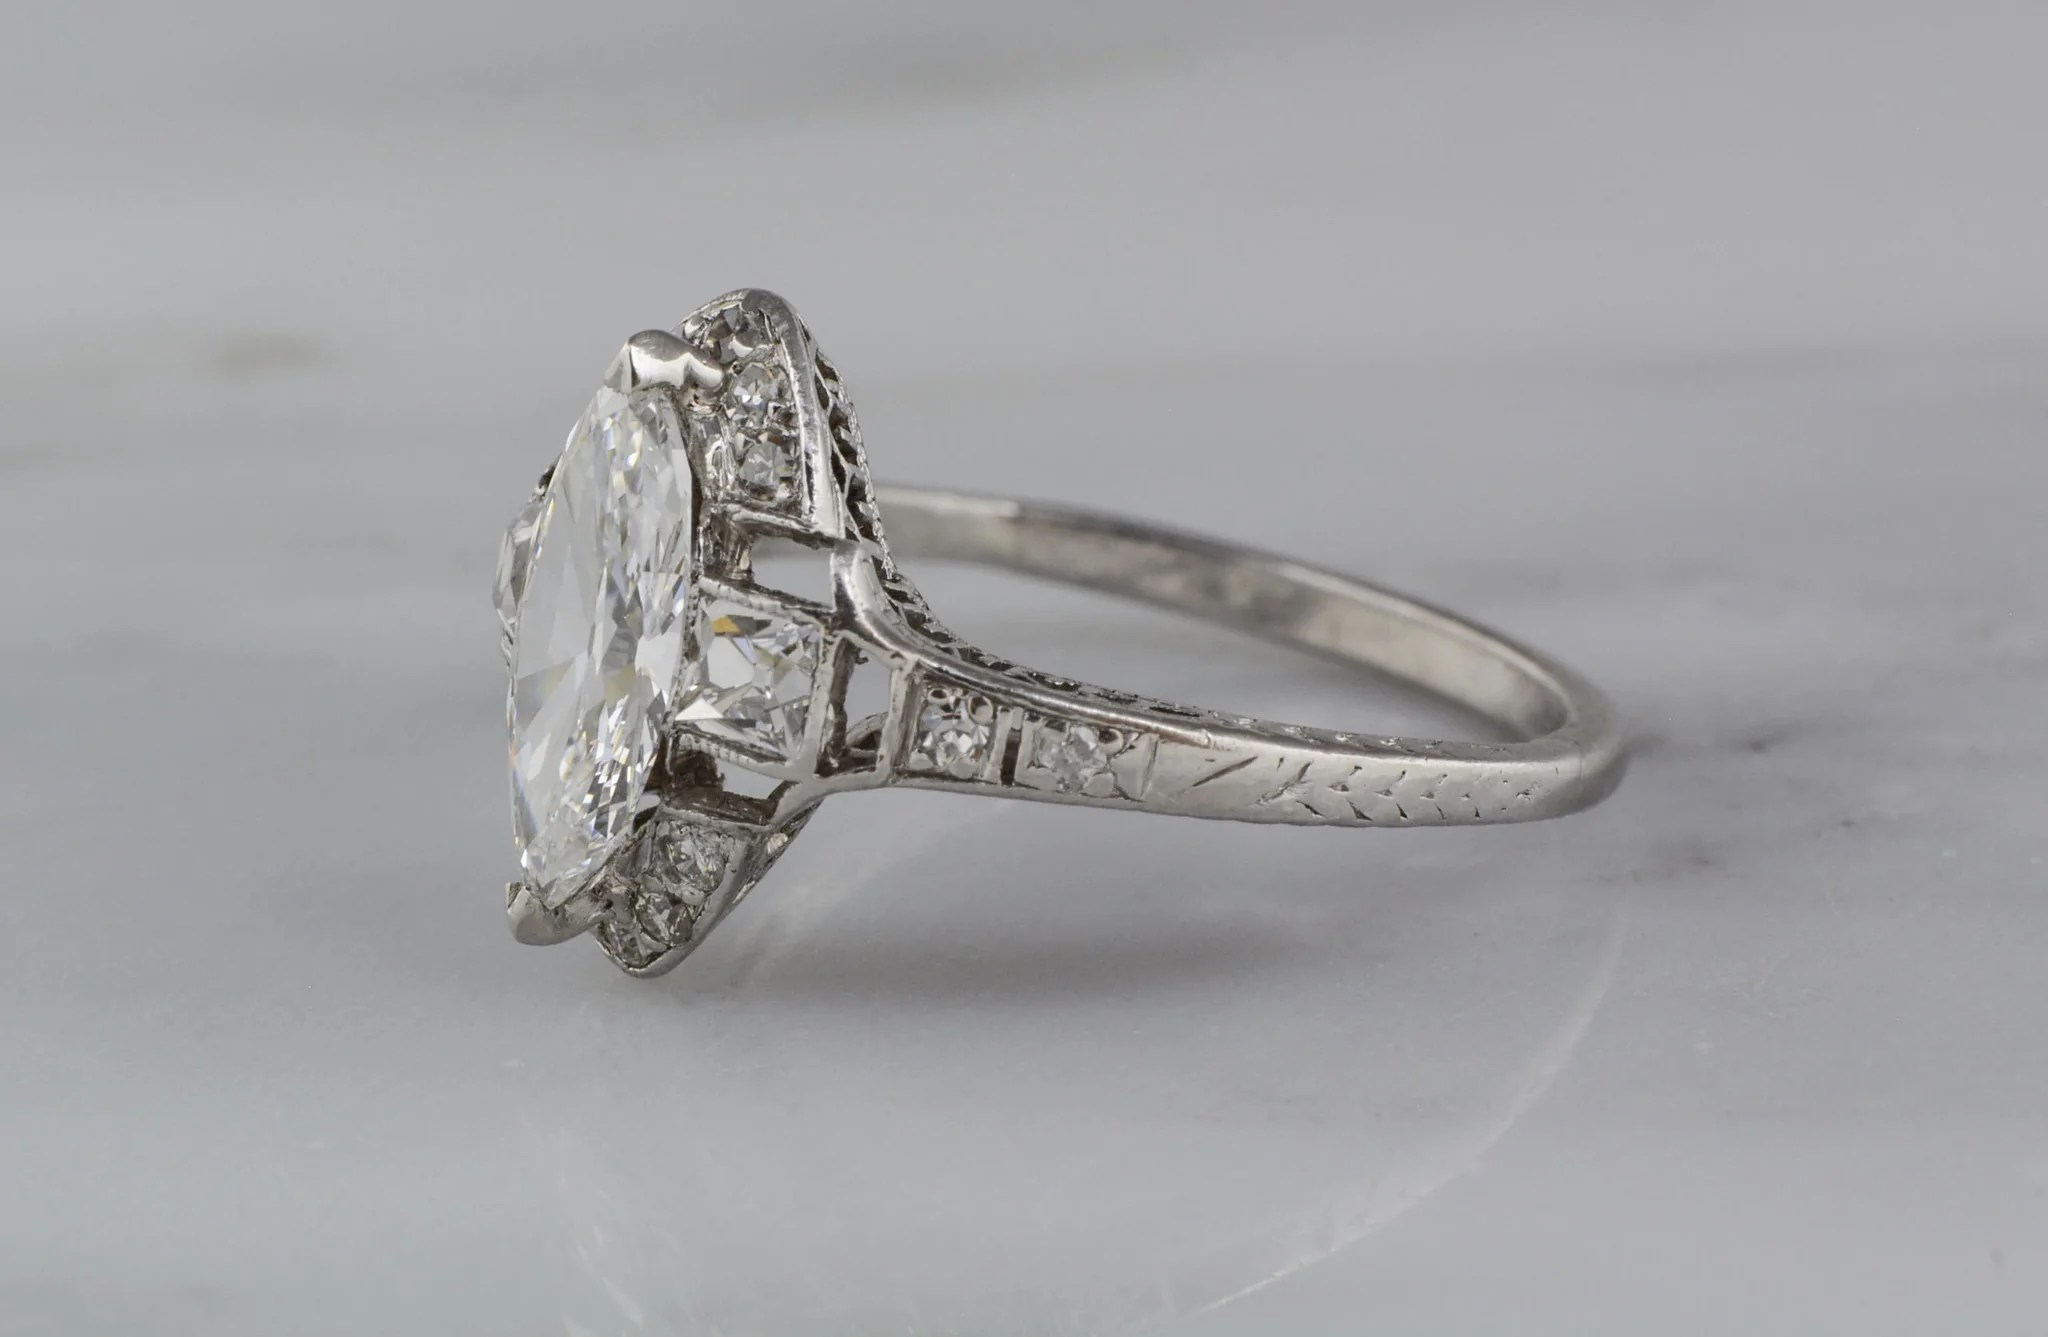 items sold page 7 art deco wedding ring 1 10 Carat Marquise Cut Diamond in Platinum Art Deco Engagement Ring with French Cut Diamond Accents R